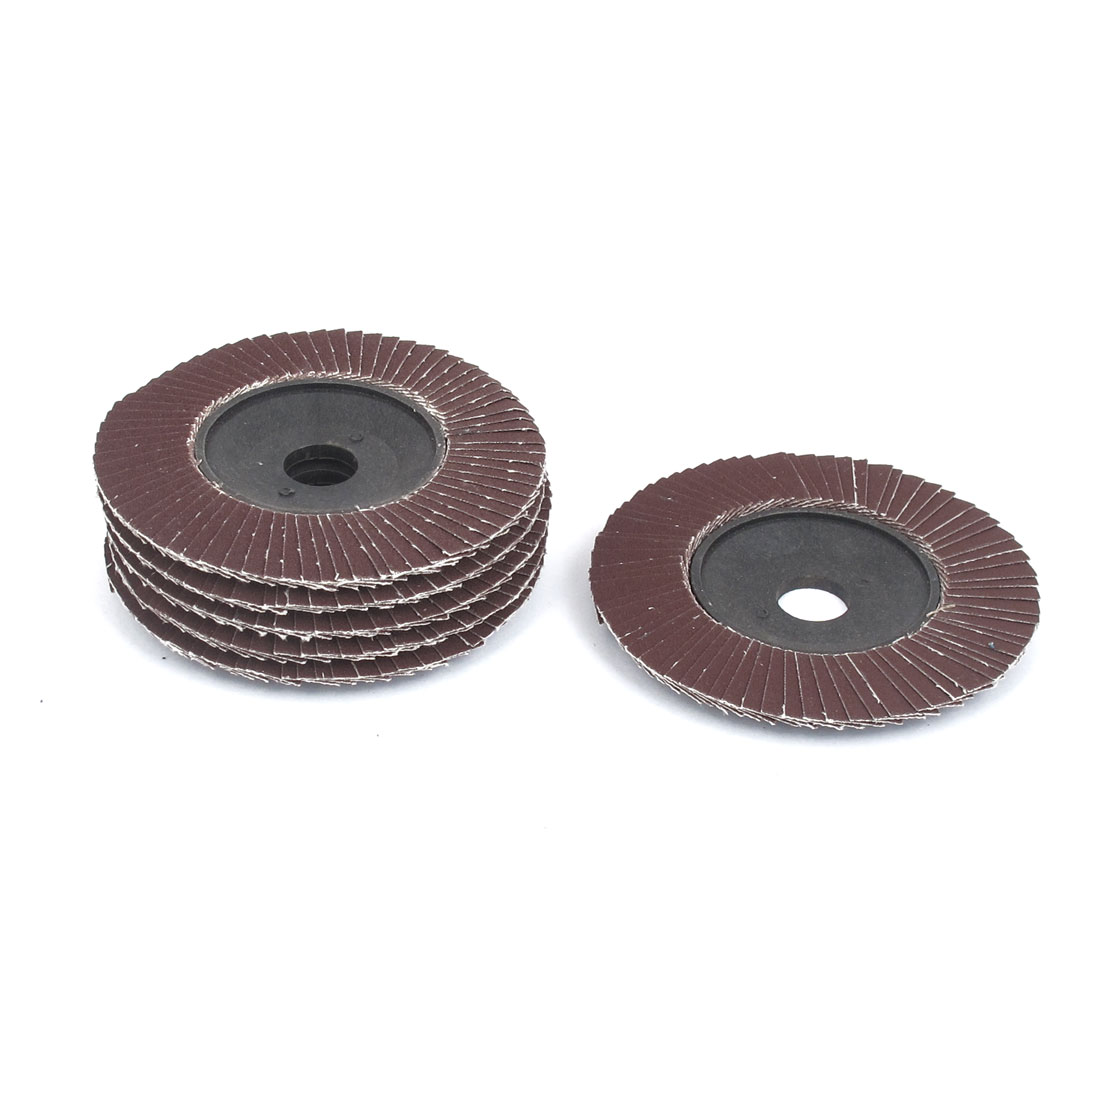 "6pcs 100mm 4"" Dia 19mm Bore 240 Grit Flap Sanding Discs Polishing Buffing Wheels"